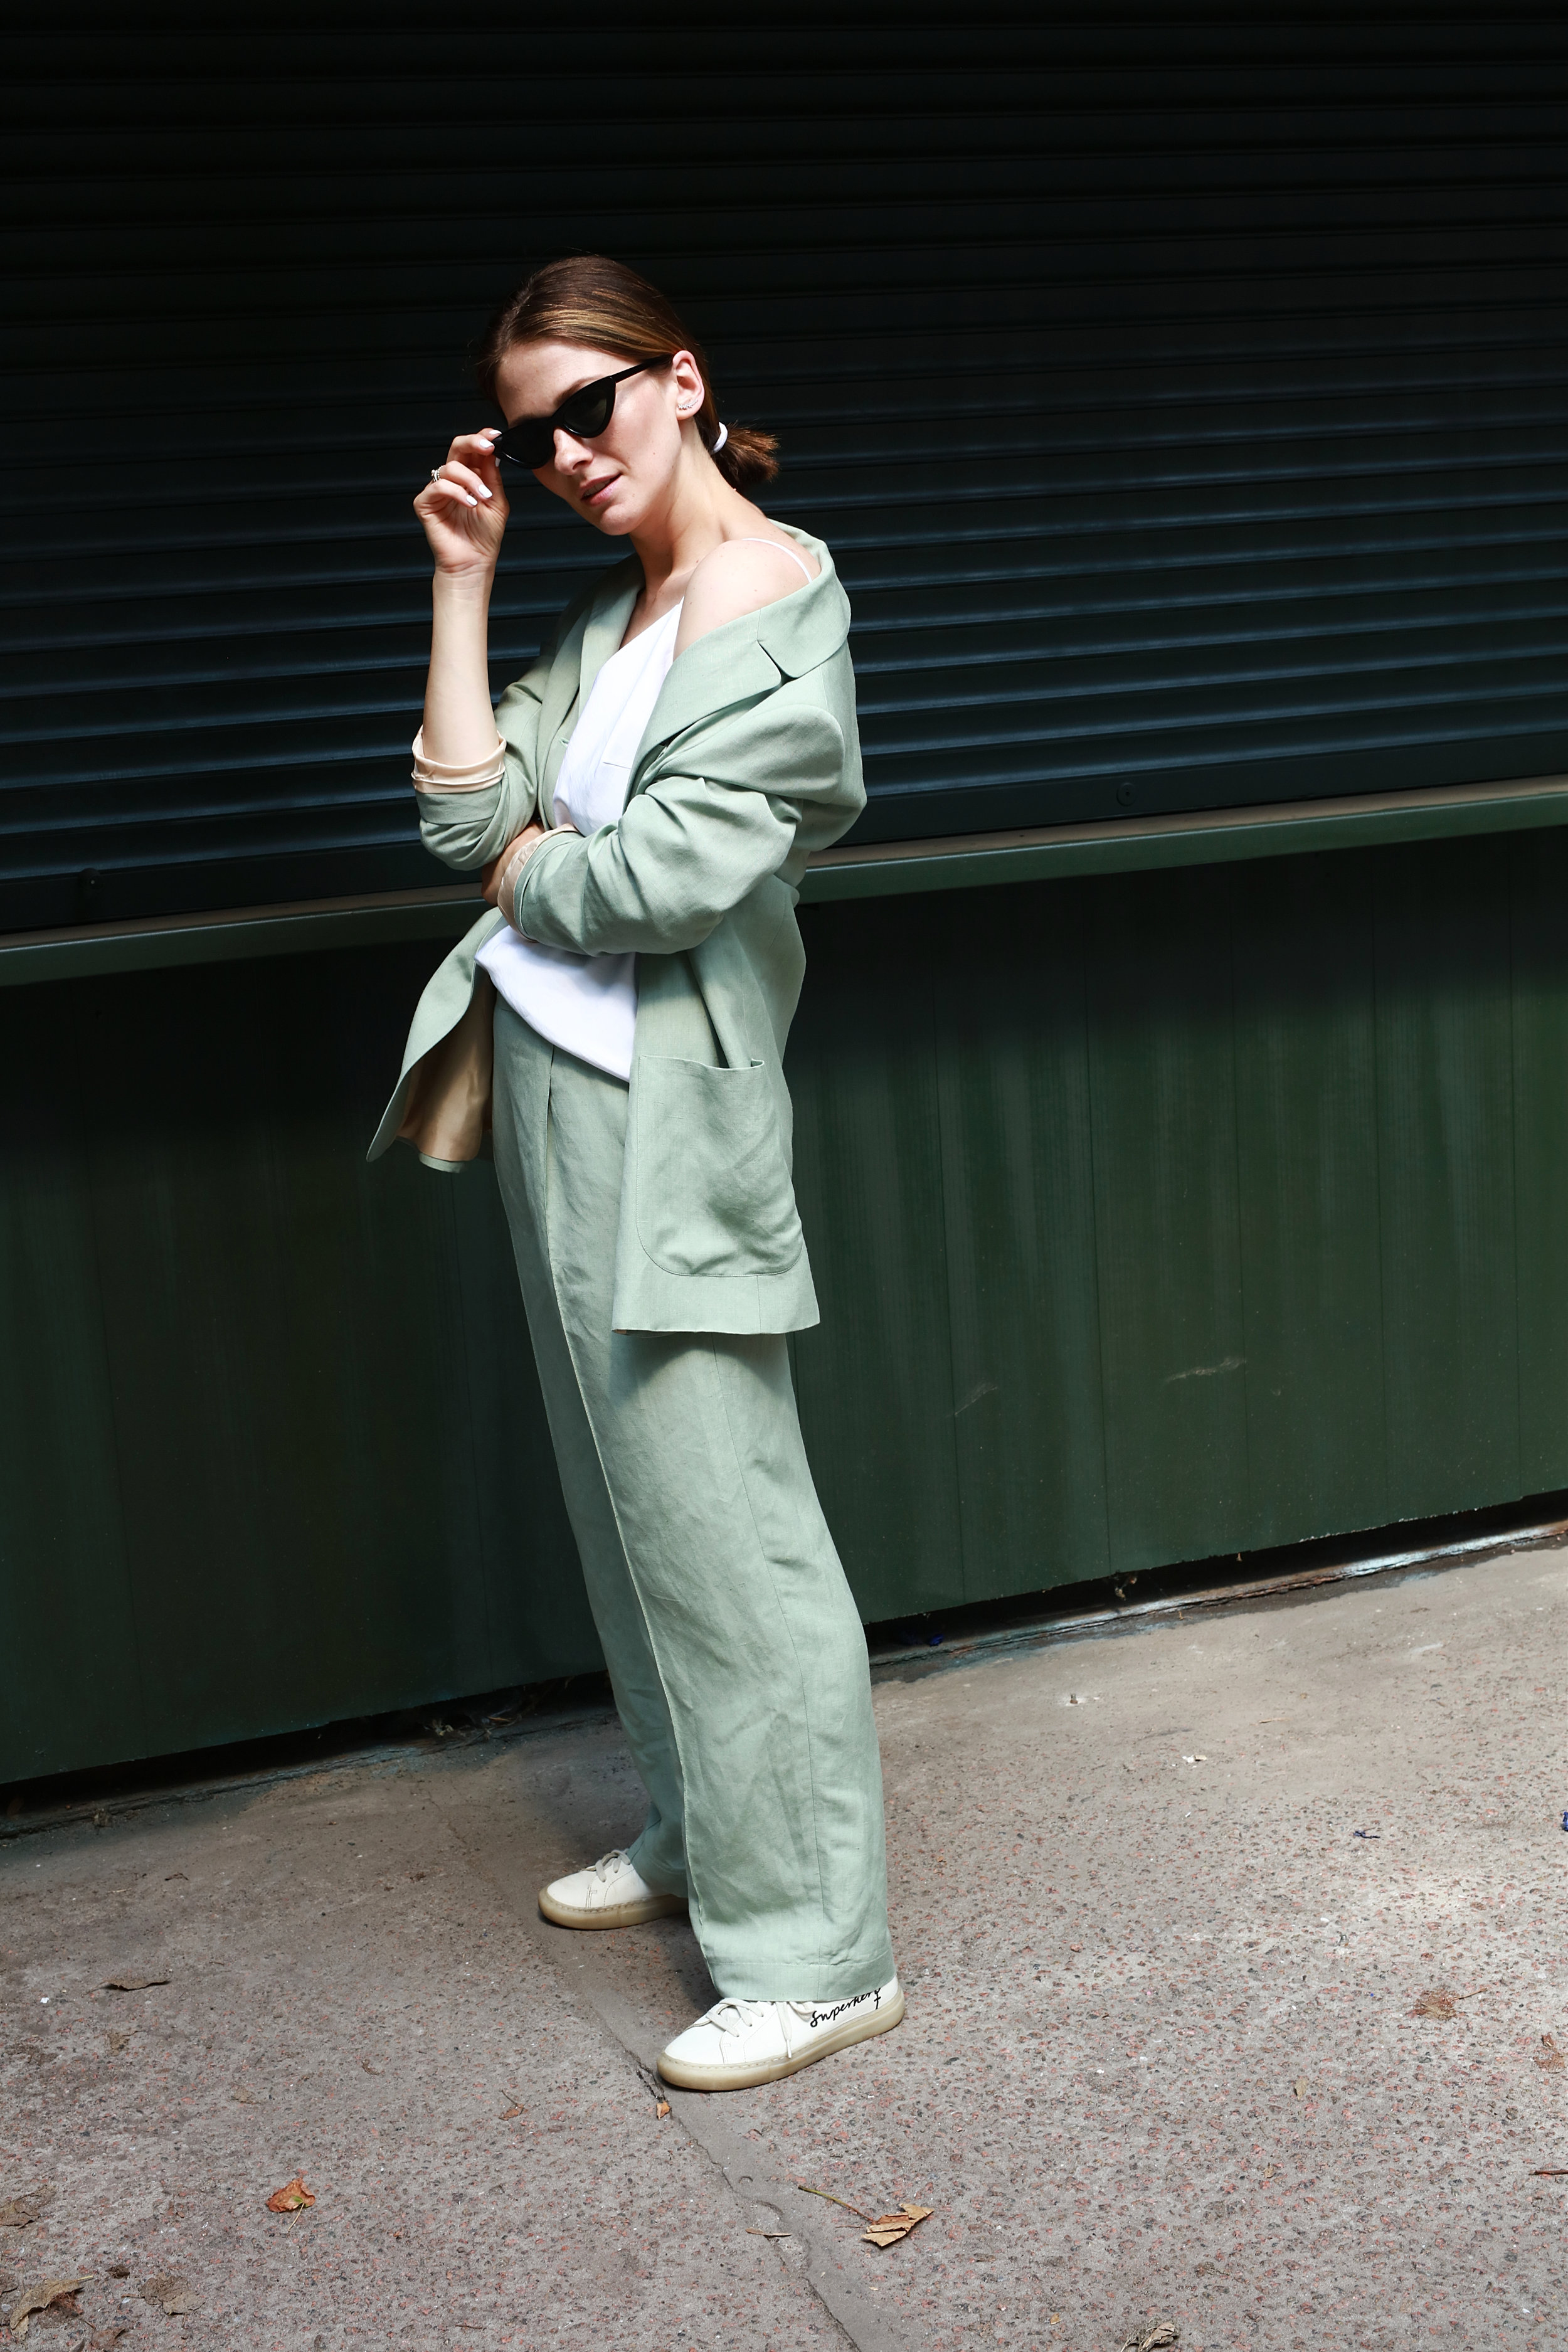 http___ann-a-porter.com_linen-jacket-and-trousers-katimo-1